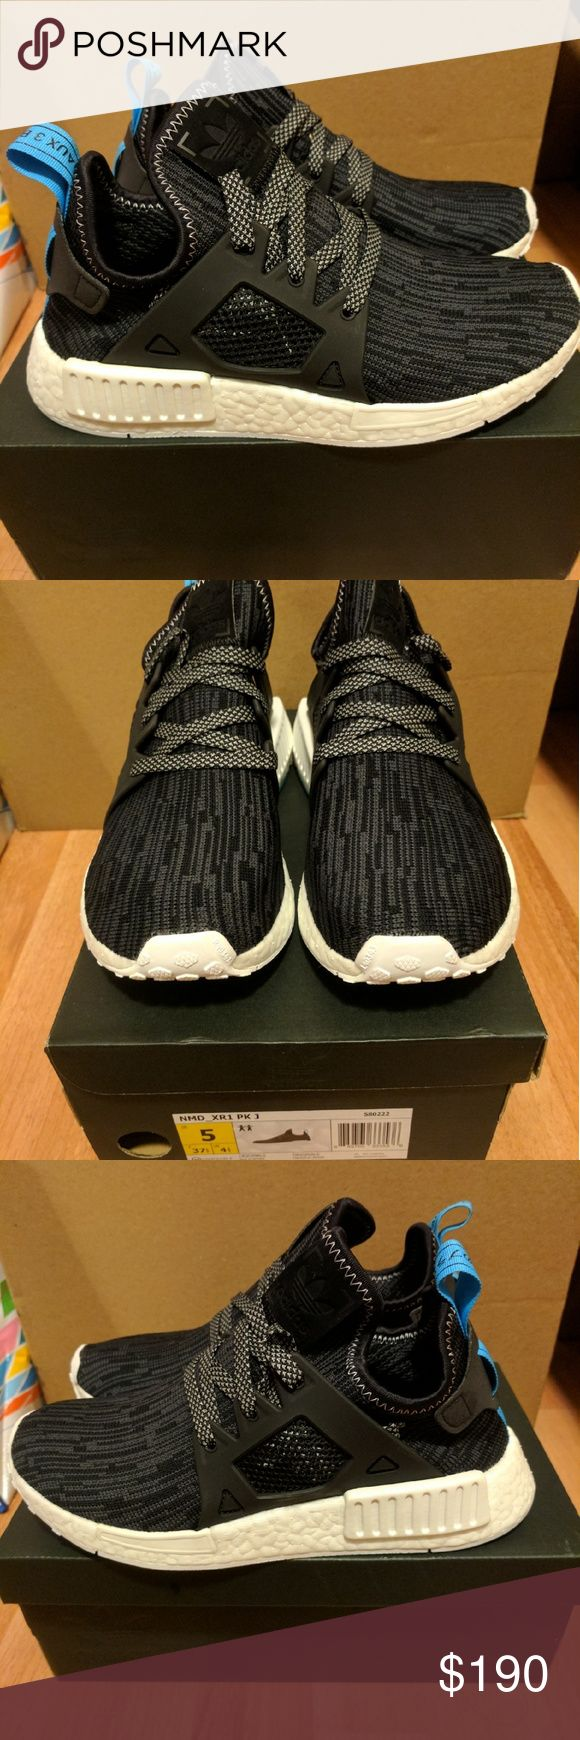 NEW ADIDAS NMD XR1 PRIME KNIT UTILITY BLACK SZ 6.5 Newest colorway for adidas NMD, sold out everywhere!  Junior size 5 Women size 6.5  Deadstock.  100% authentic.  Will be shipped with original box and protection box.  No trades.  Price is firm.  No returns for incorrect size, size is as described in description  Check out my account for more shoes and sizes!  Tags:Adidas, Jordan, Nike, retro, boost, Yeezy, ultra boost, prime knit, supreme, make up, contacts Adidas Shoes